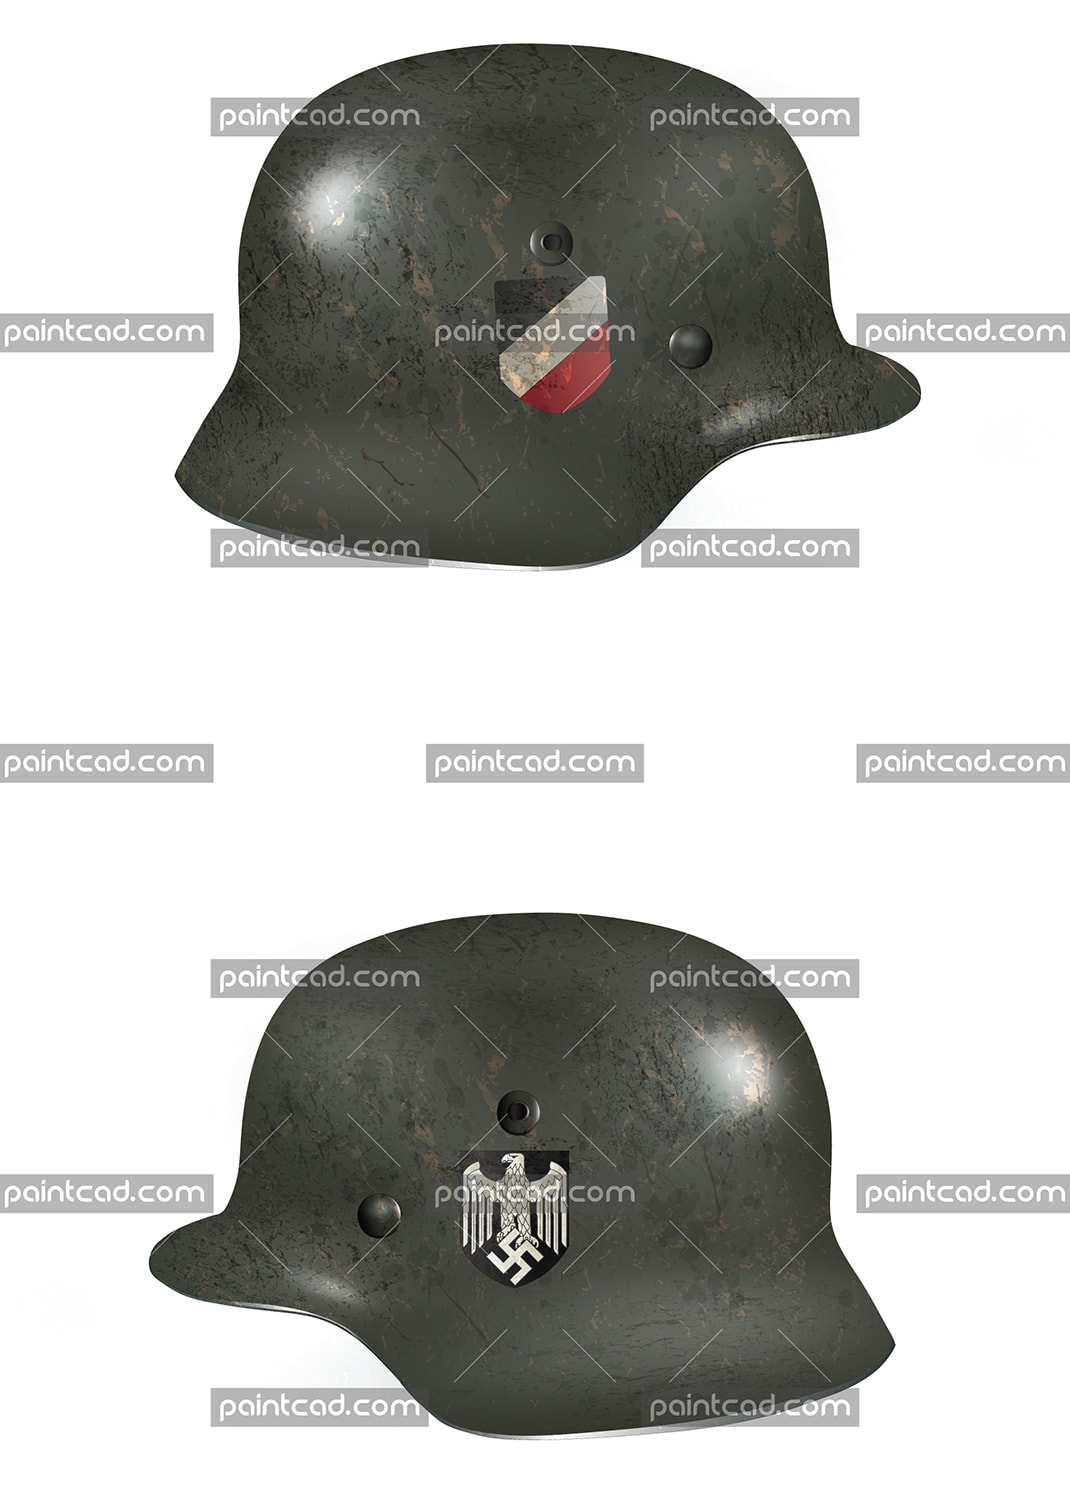 "Paintcad collection ""Great Patriotic War and 70 years of the Victory over Nazism"".  Vector illustration of Nazi dark green helmet used by land forces of German army (Deutsches Heer) during the World War II. Double decals insignia. On right side have an imperial shield in black, white and red. These are the colors of the flag of the German Empire (1871–1918) also known as the Second Reich. On left side view is shown stylized imperial eagle who has grabbed swastika. Insignia of the Heer. Eastern front, 1943. Realistic computer aided painting with rust and scratched surfaces. Isolated objects on white background."